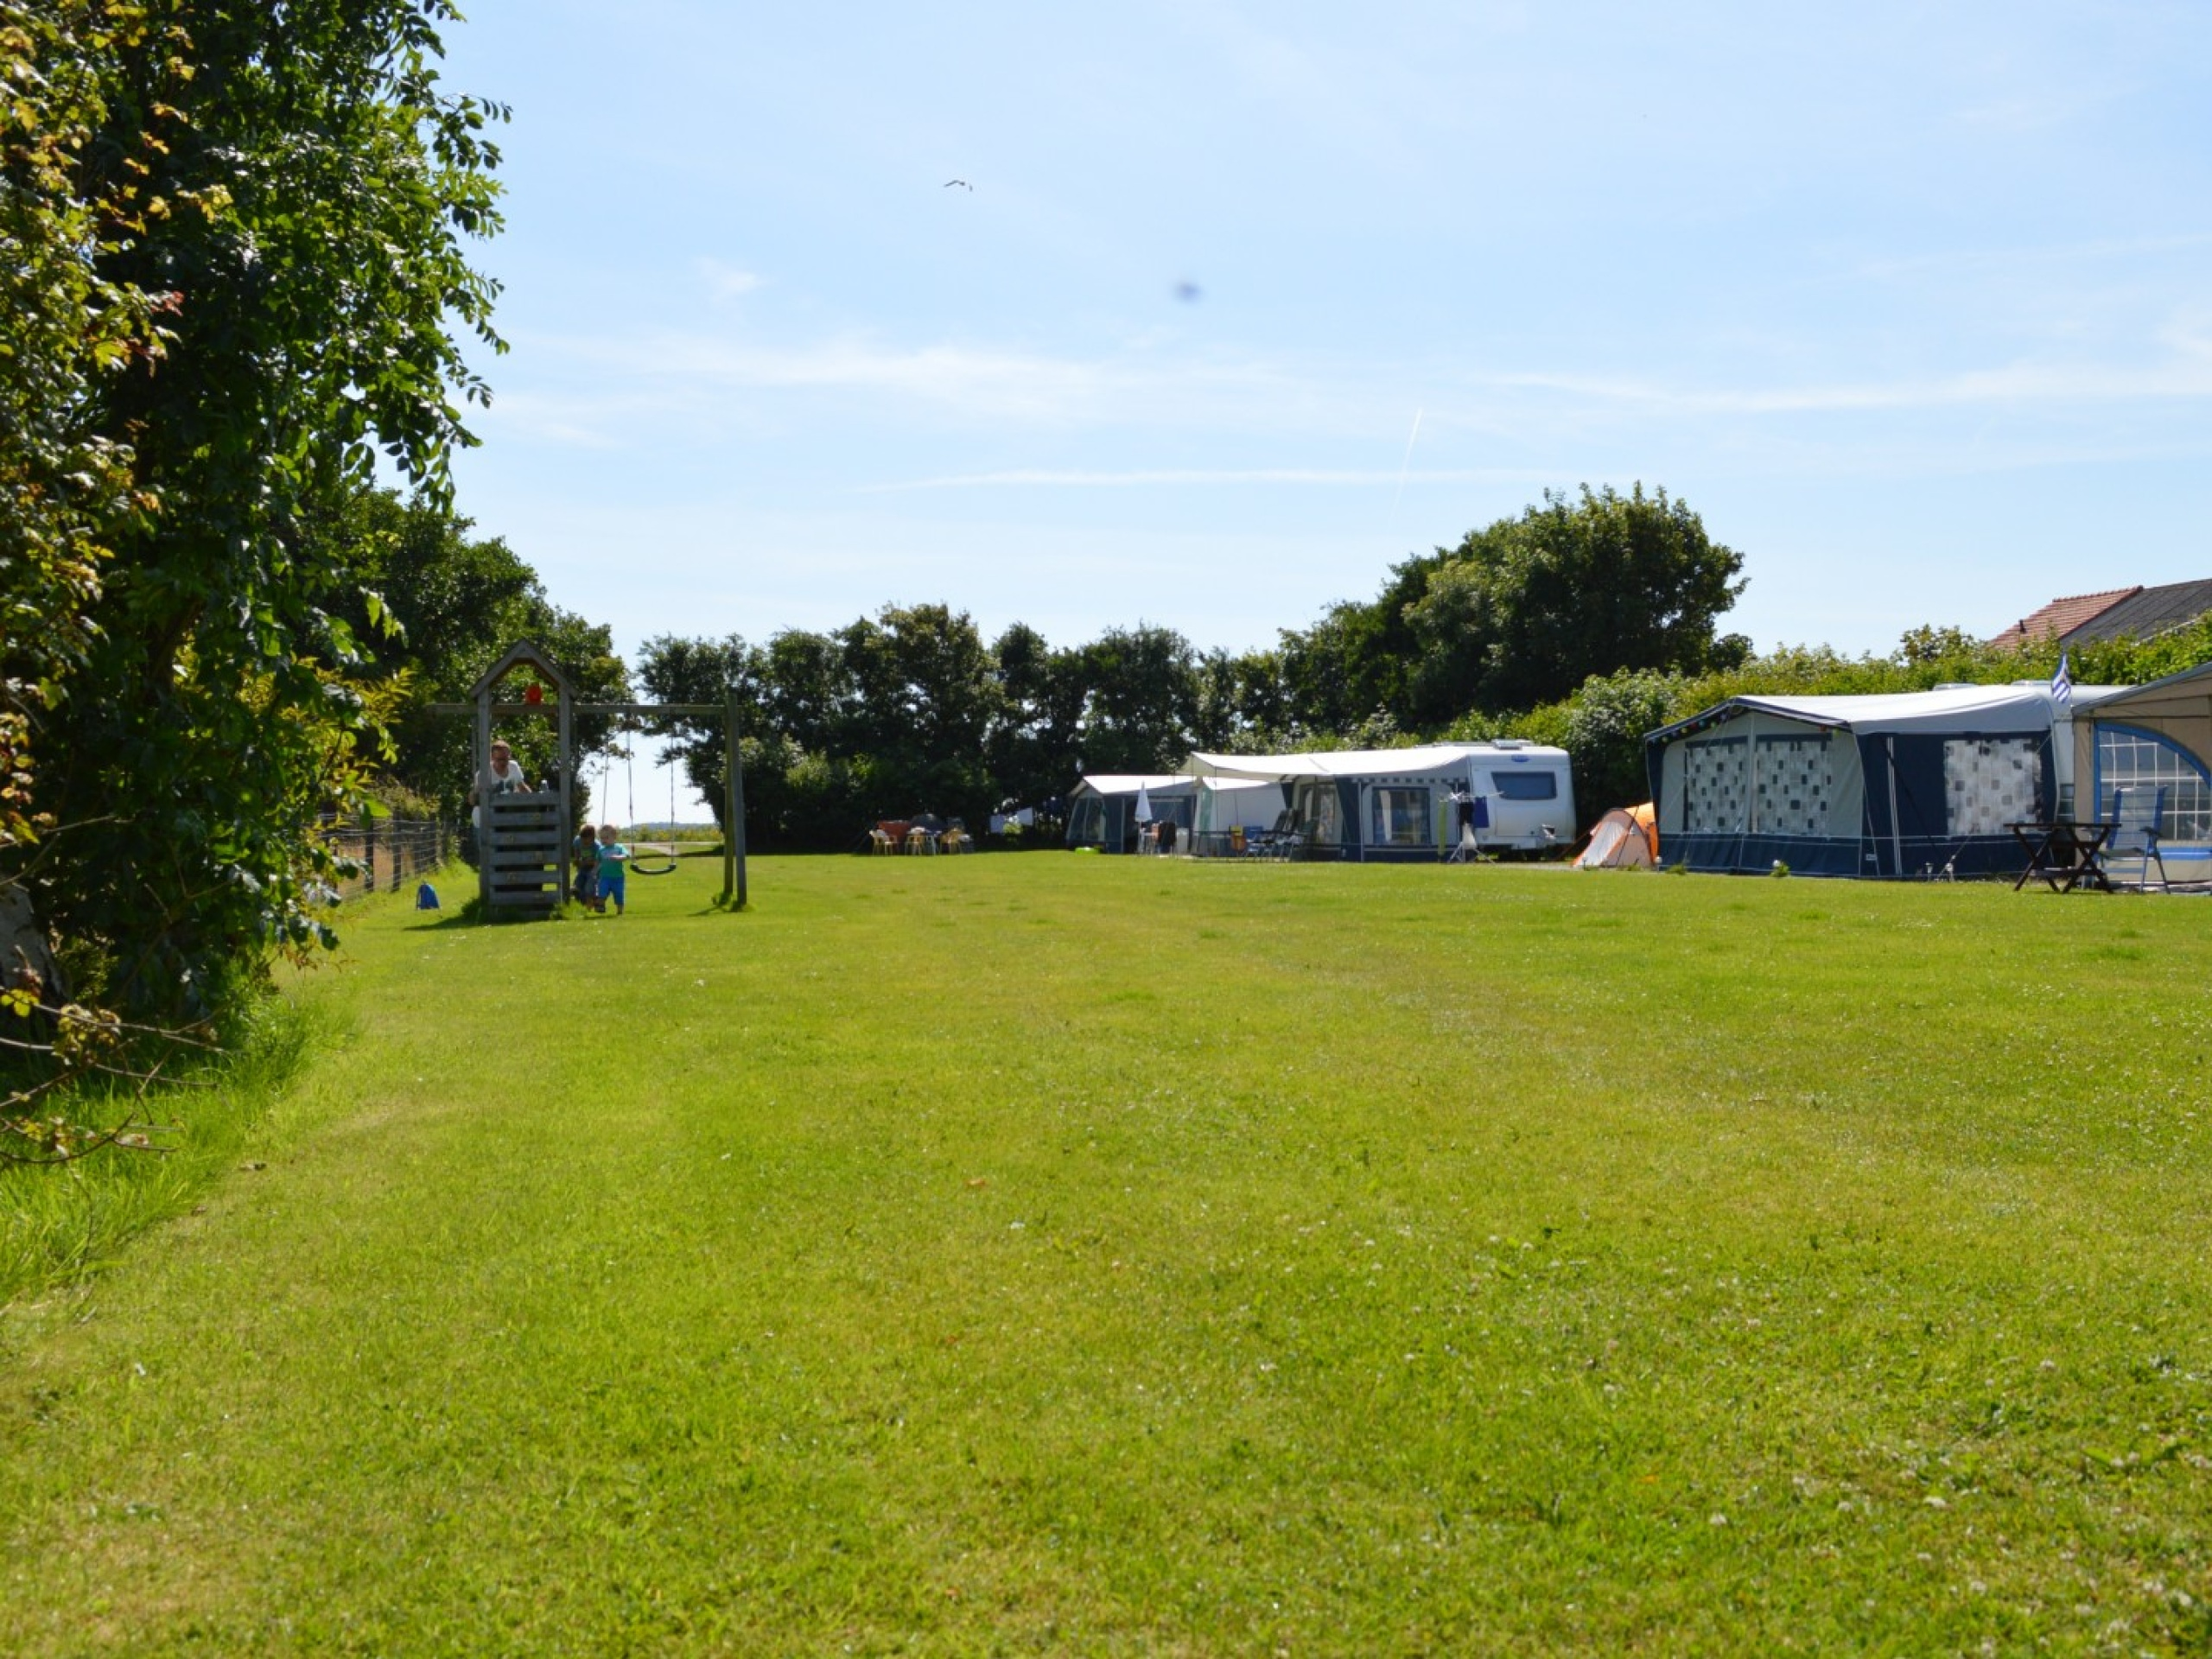 Wonderful camping in this lovely rural location near De Cocksdorp